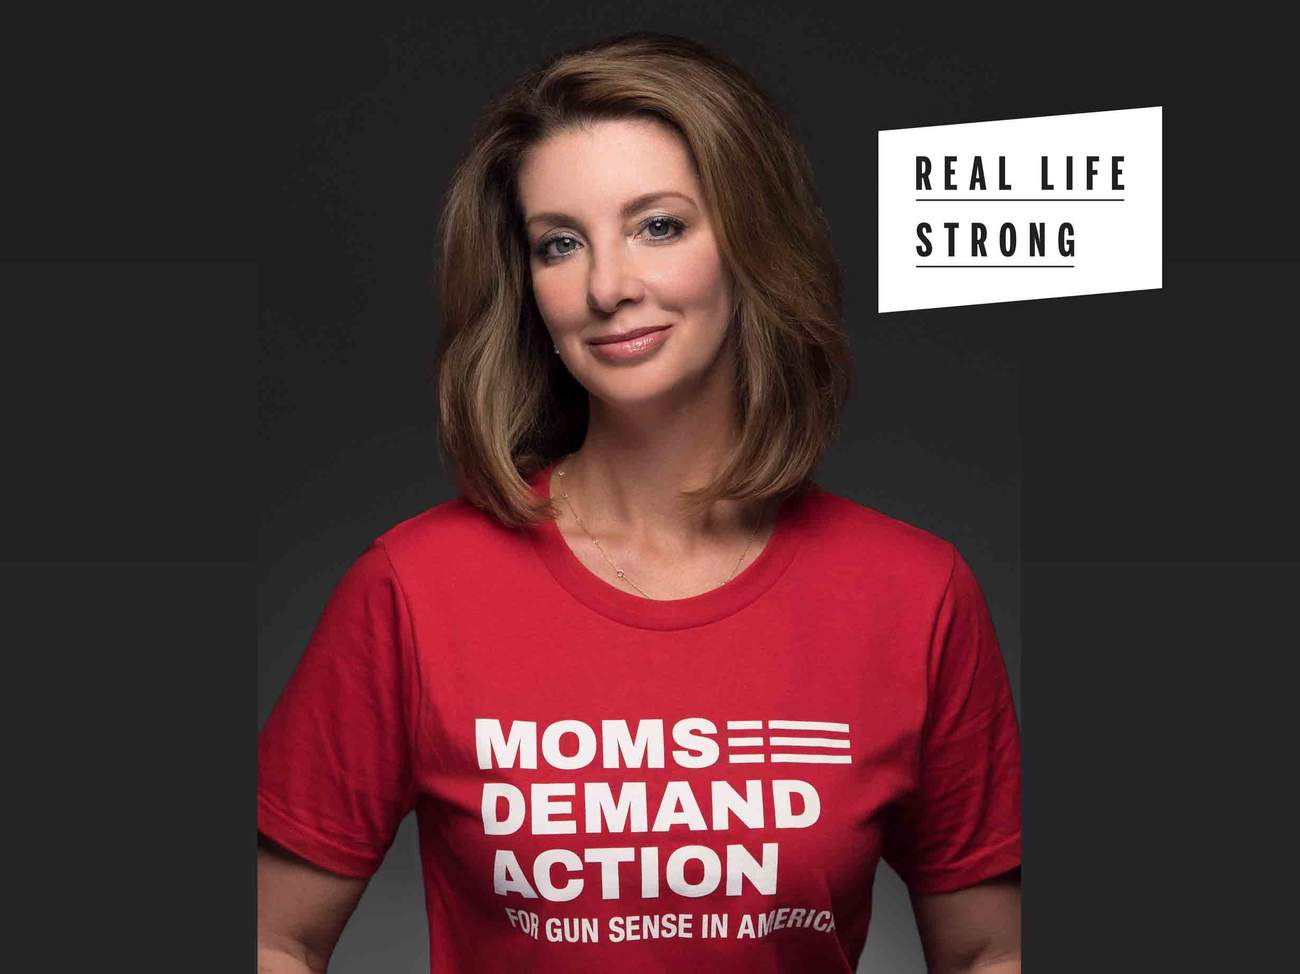 shannon-watts-real-life-strong-portrait